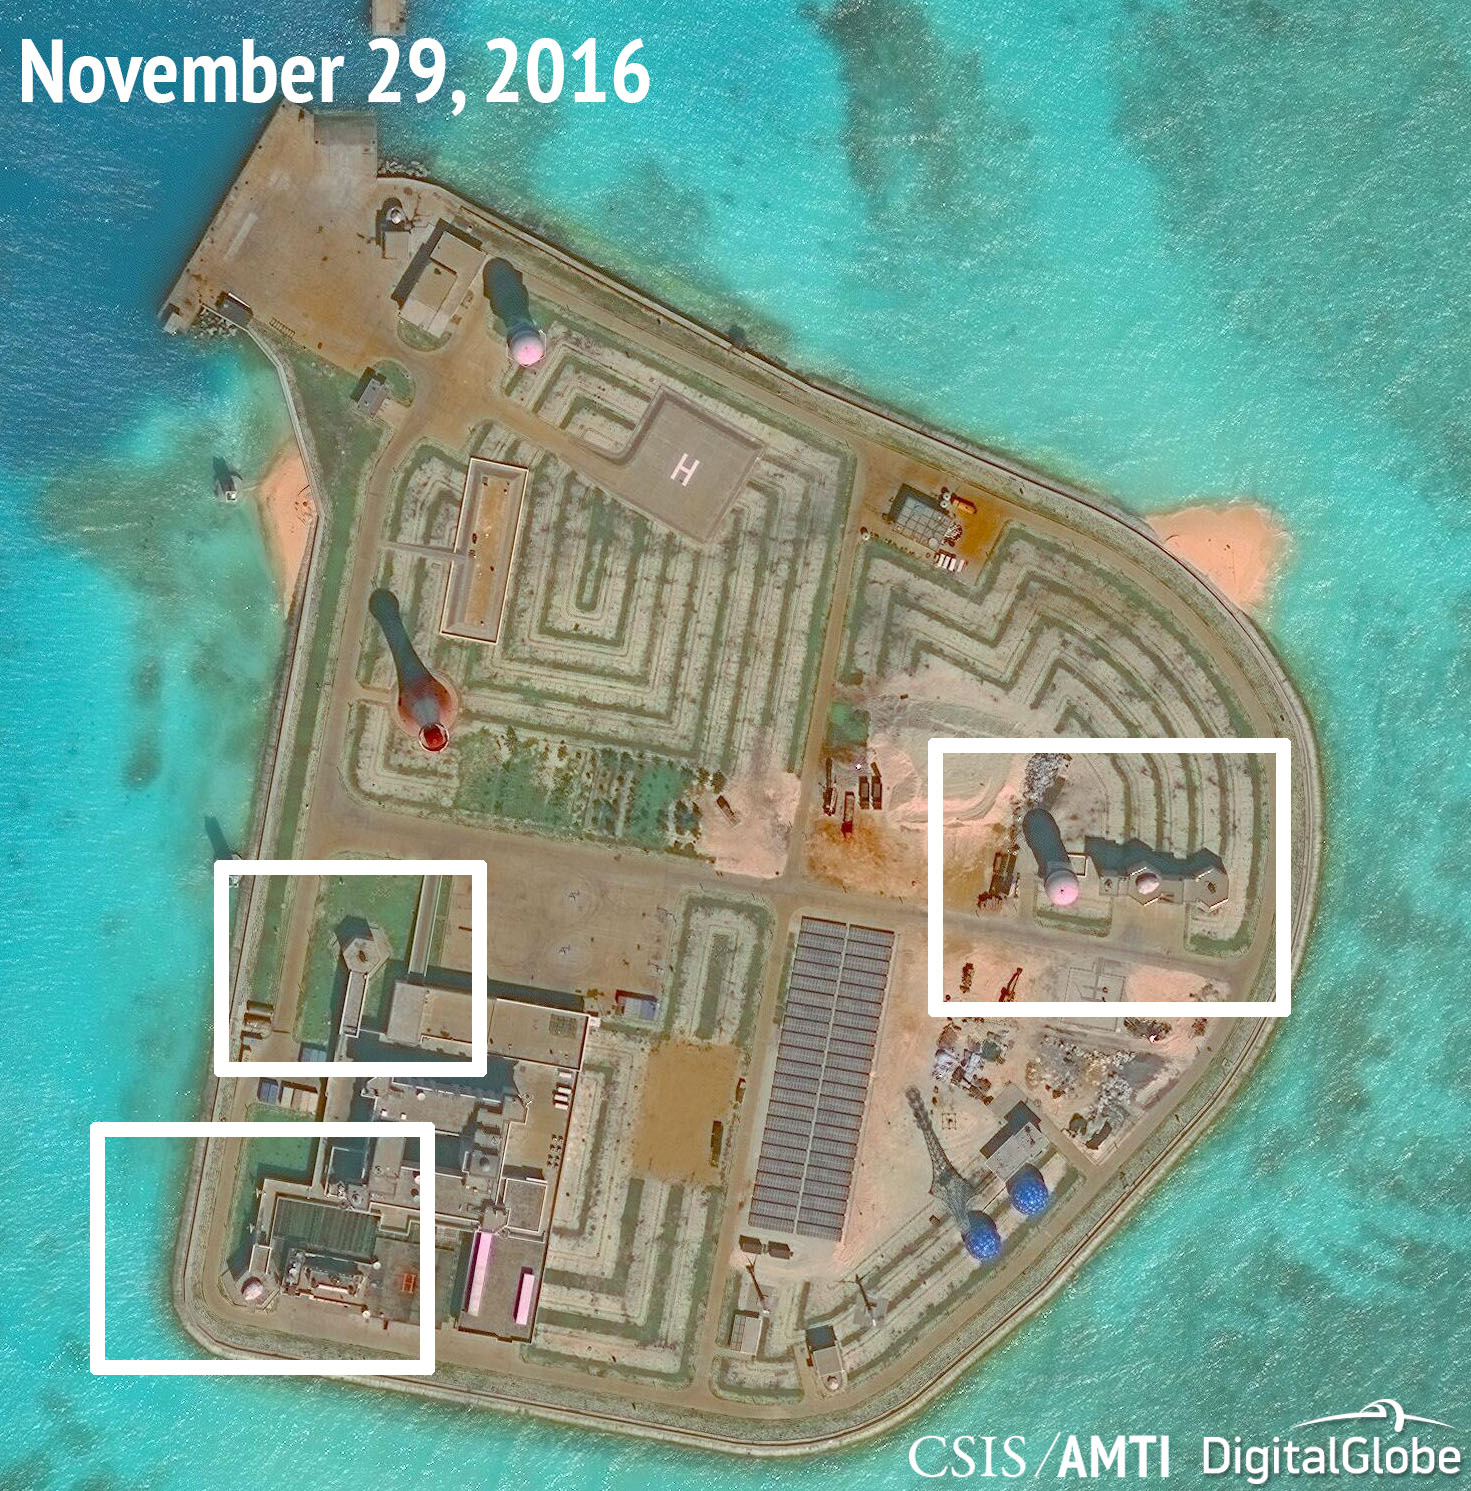 China installs weapons systems on artificial islands